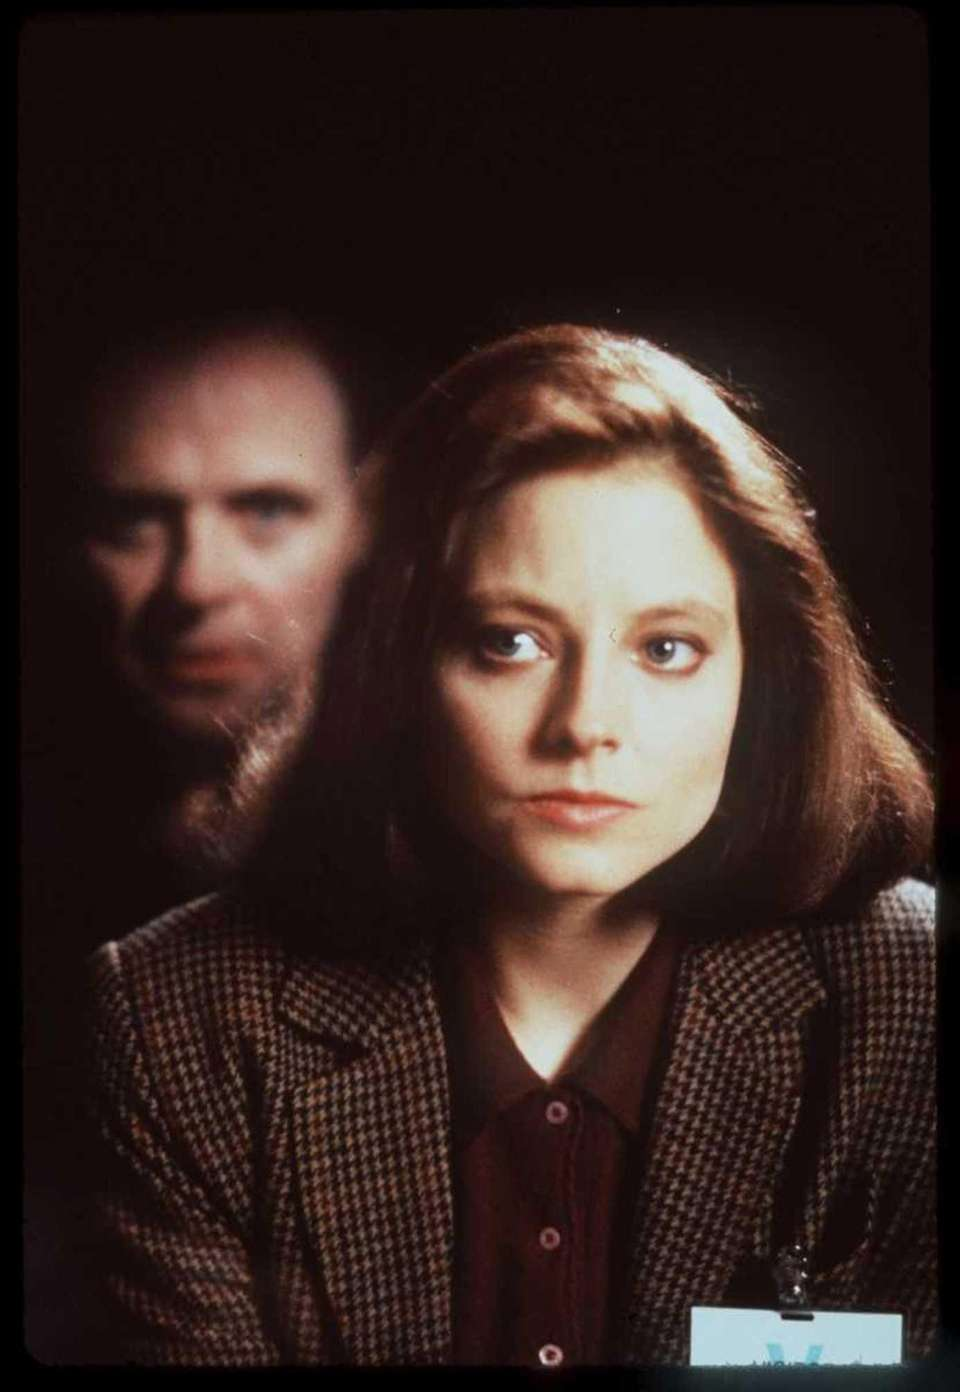 Anthony Hopkins as Dr. Hannibal Lecter and Jodie